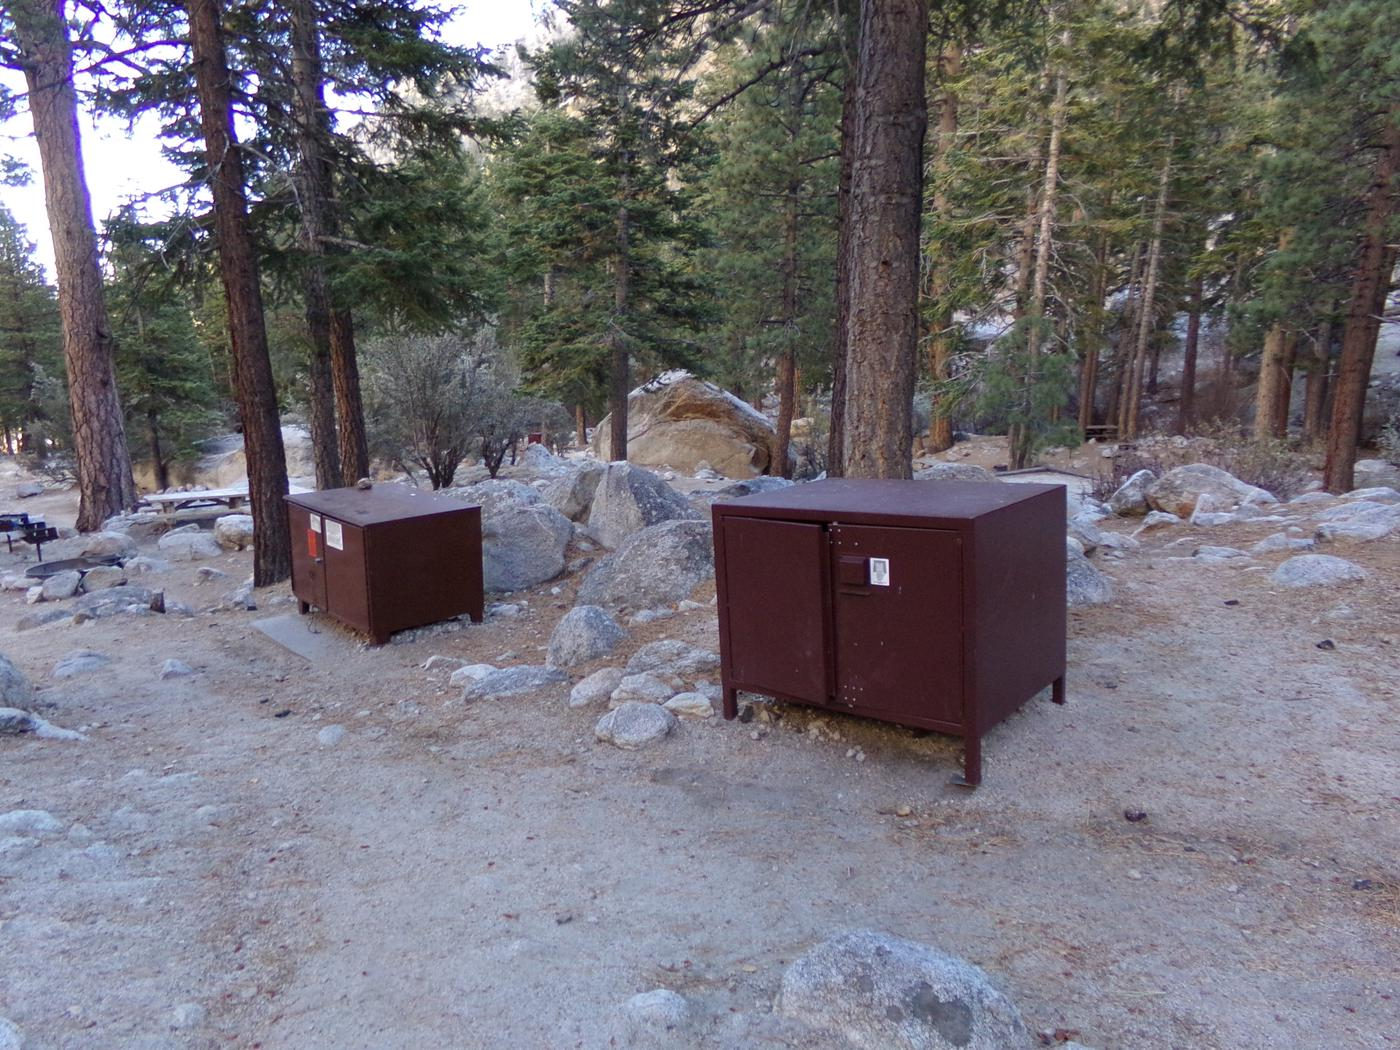 Mt. Whitney Portal Campground Group Site #03 featuring food storage at this mountain top setting.